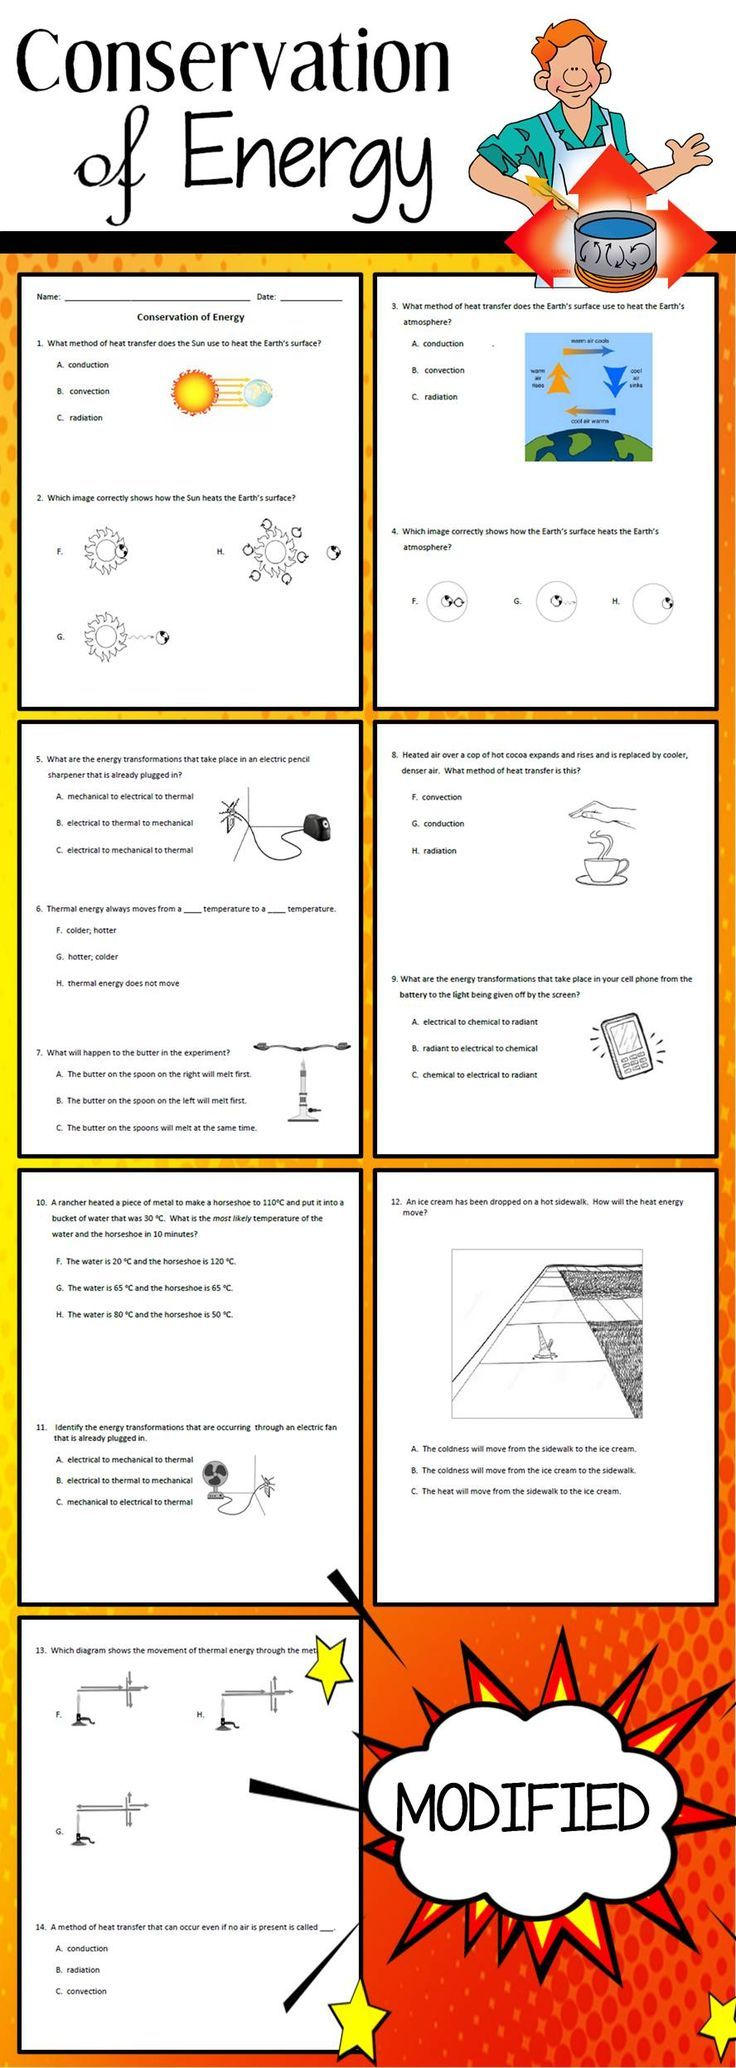 This Is The Modified Version Of My Conservation Of Energy Worksheet Created For An In Elementary School Science Elementary Science Activities Stem Lesson Plans